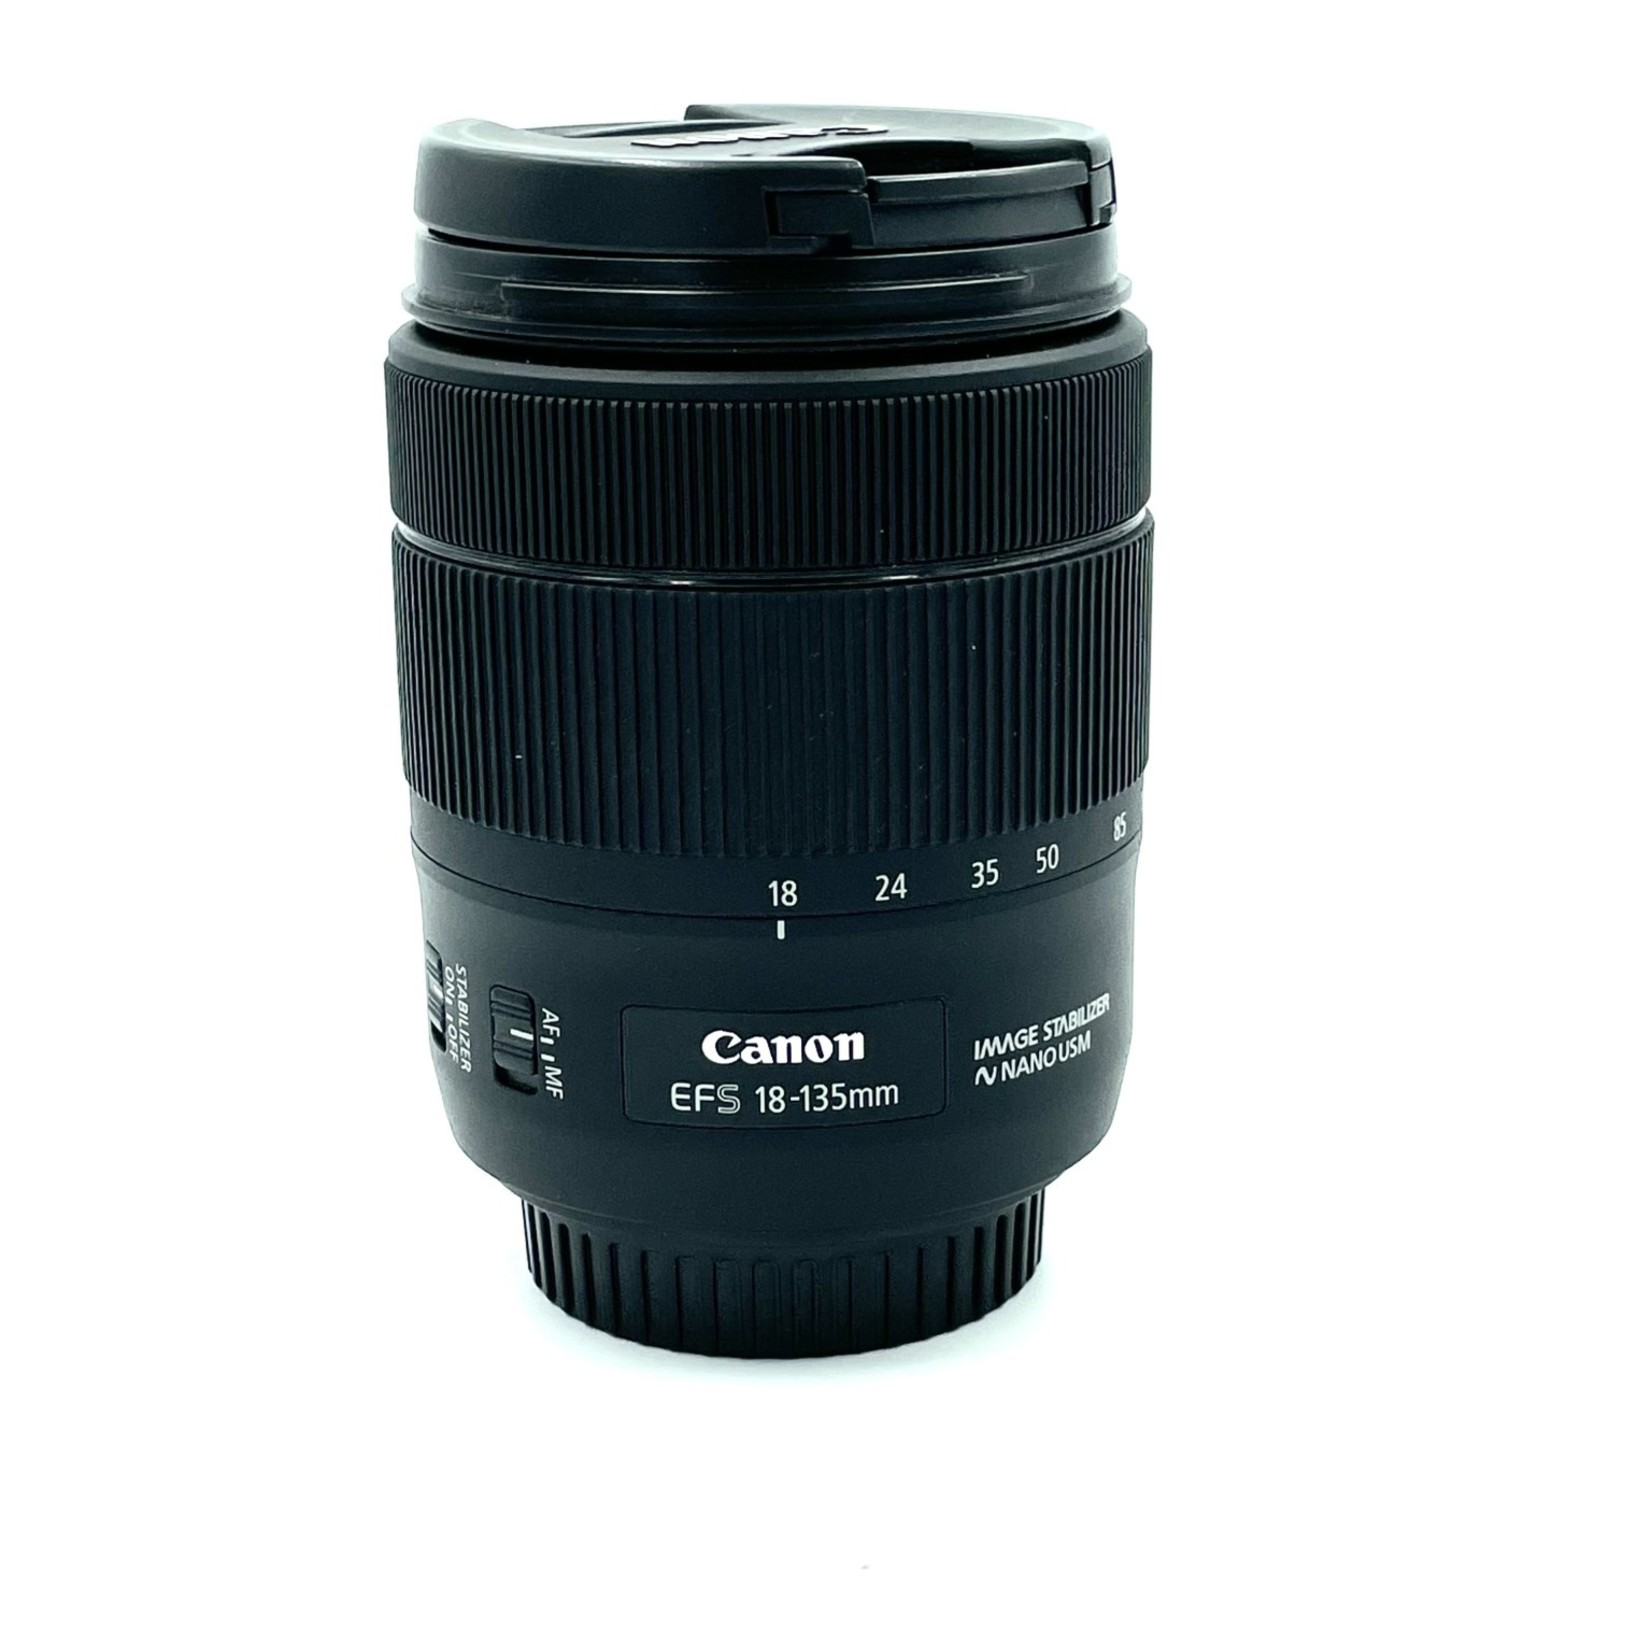 Canon Used Canon  EFS 18-135mm